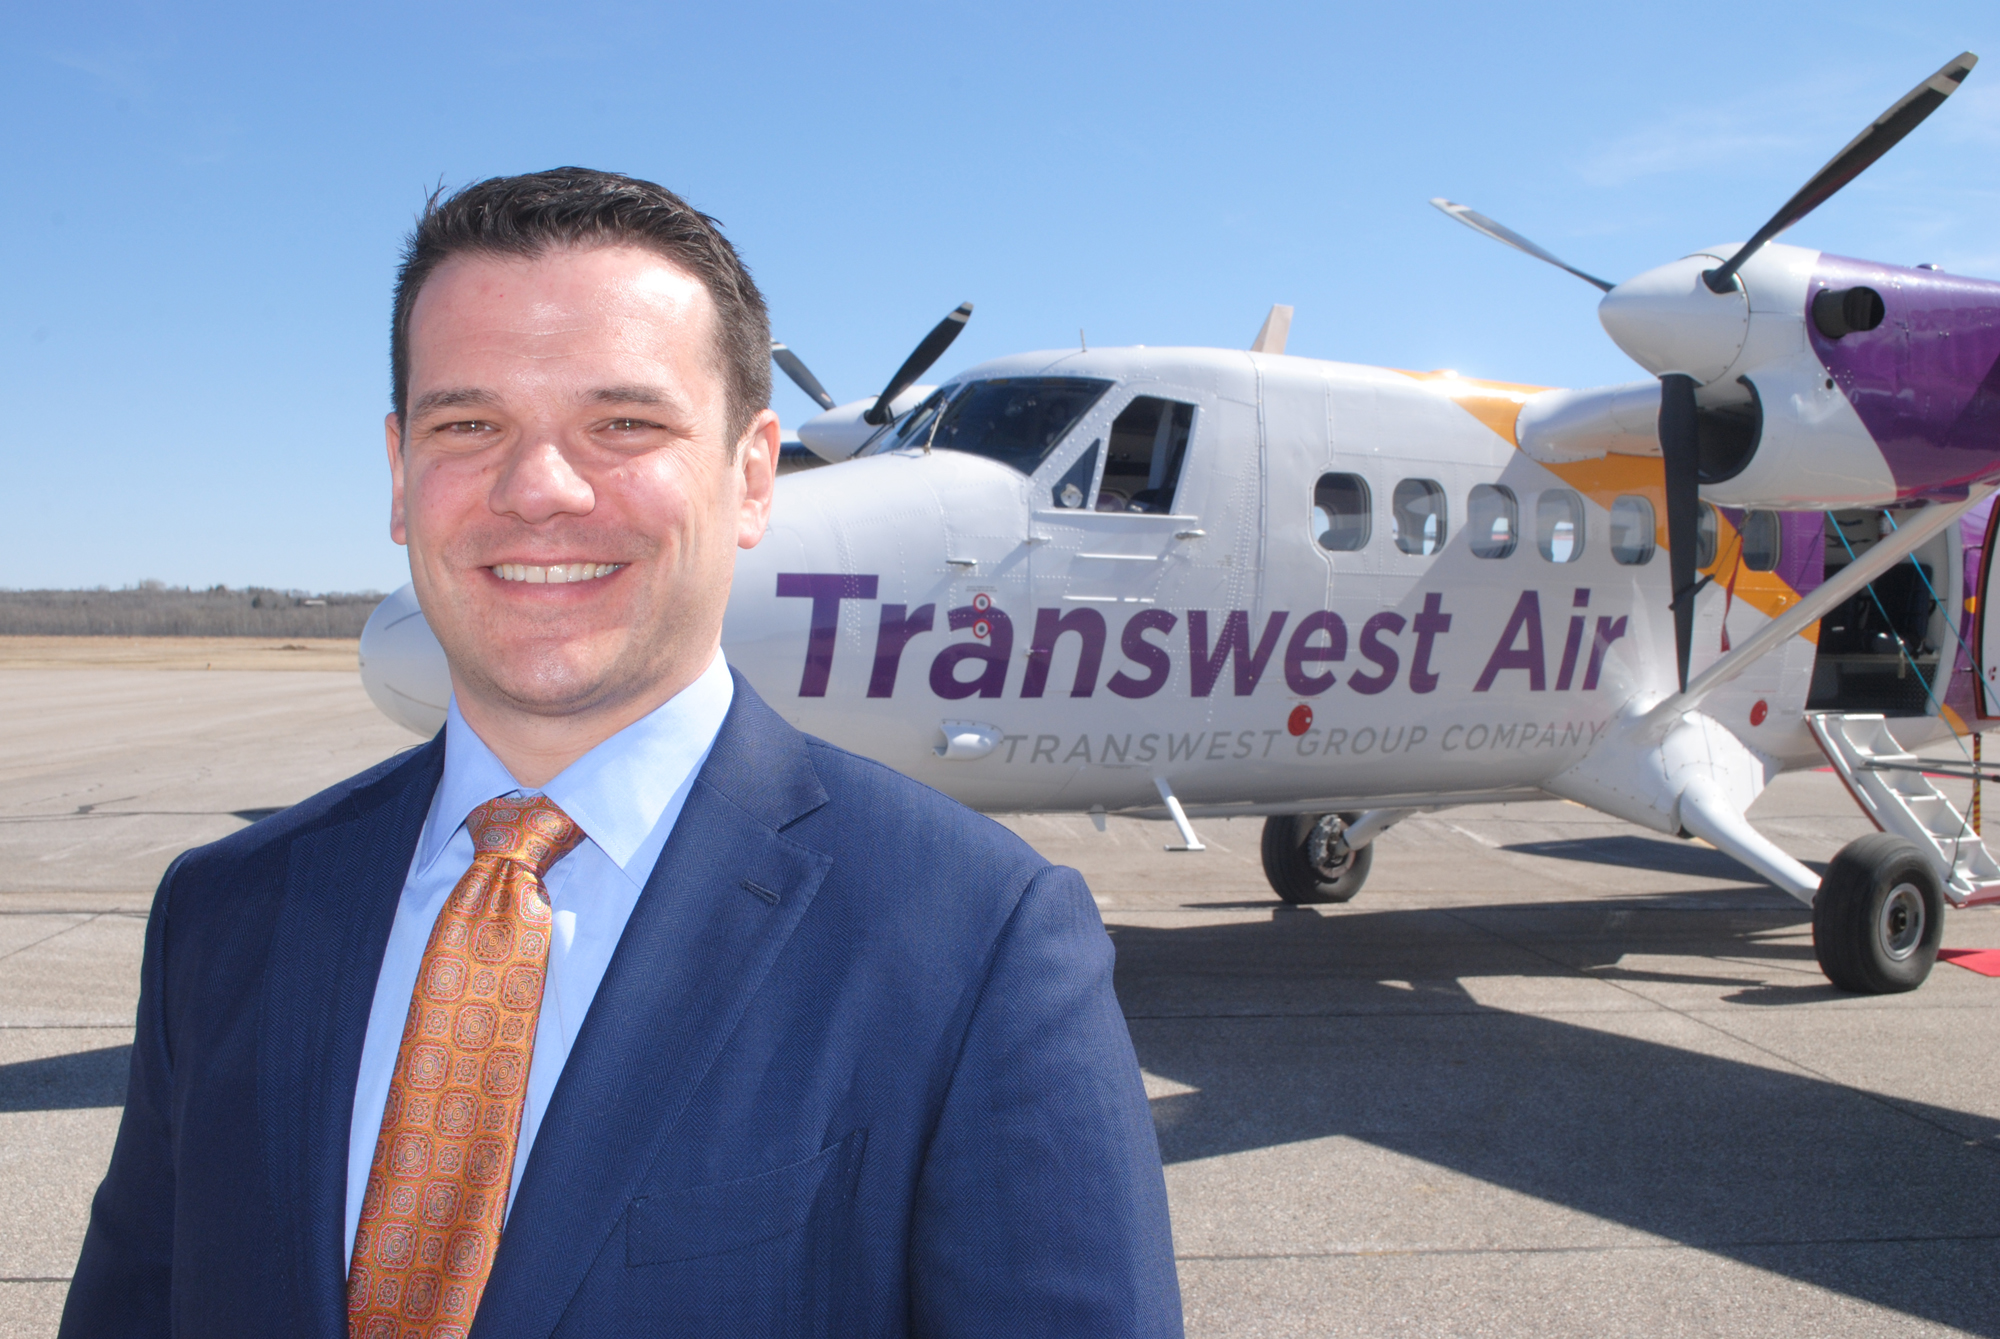 Ready to Soar – Transwest Air celebrates 15th anniversary and expansion in the North